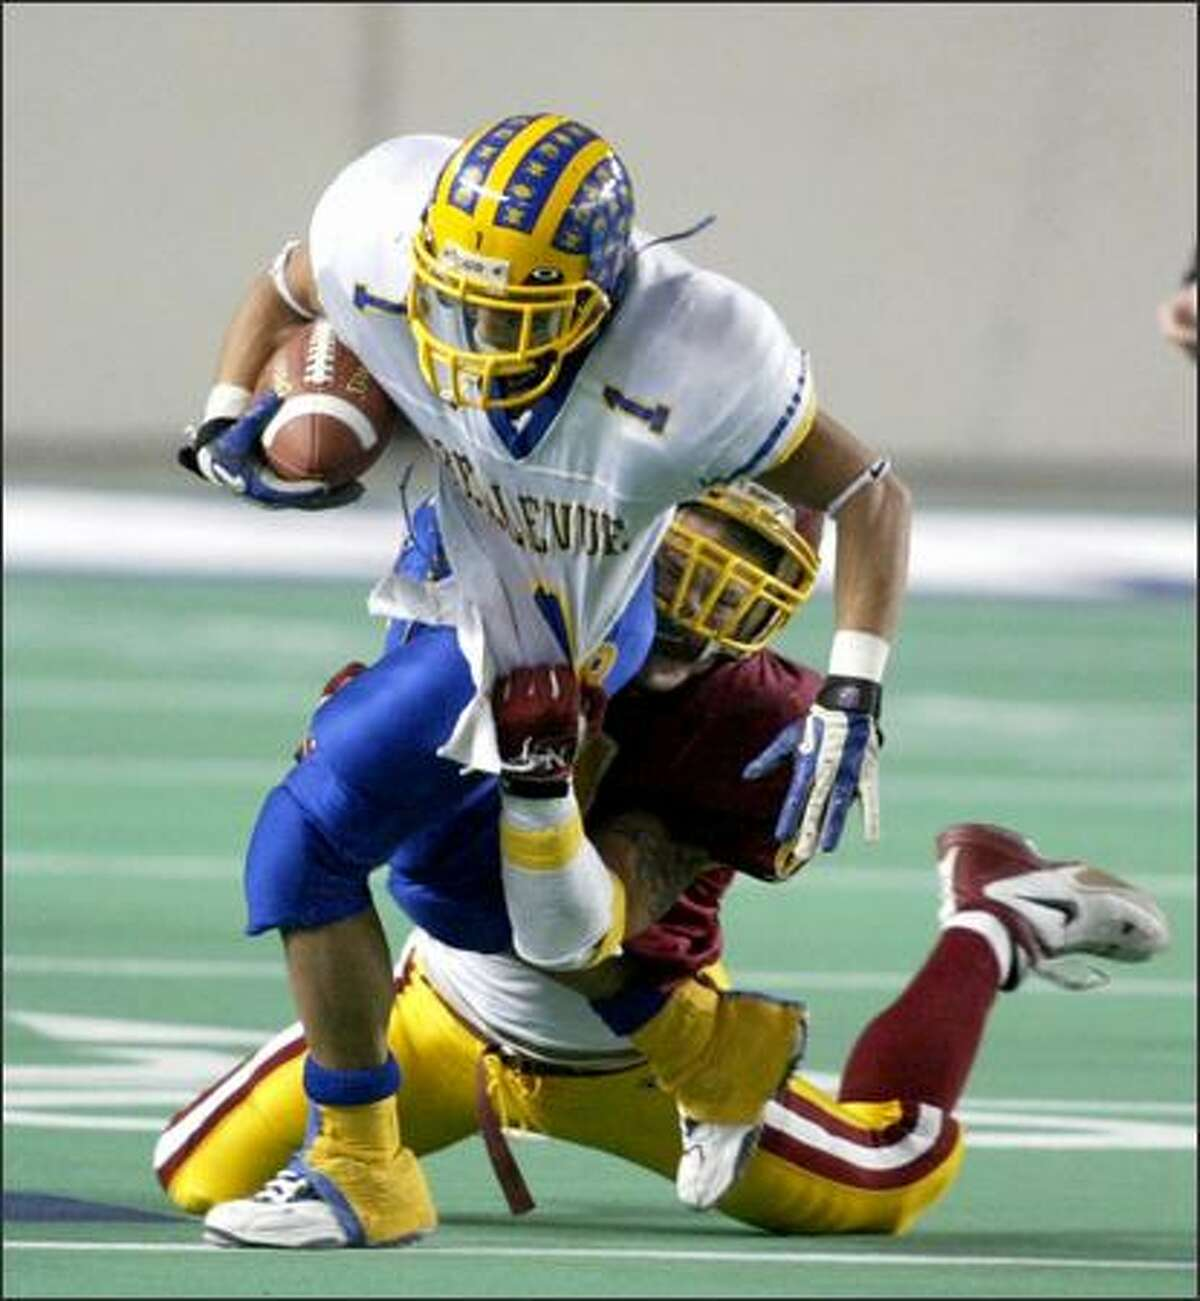 O'Dea's Anthony Felder, on ground, brings down Bellevue's Tracy Ford in the 2003 3A title game.